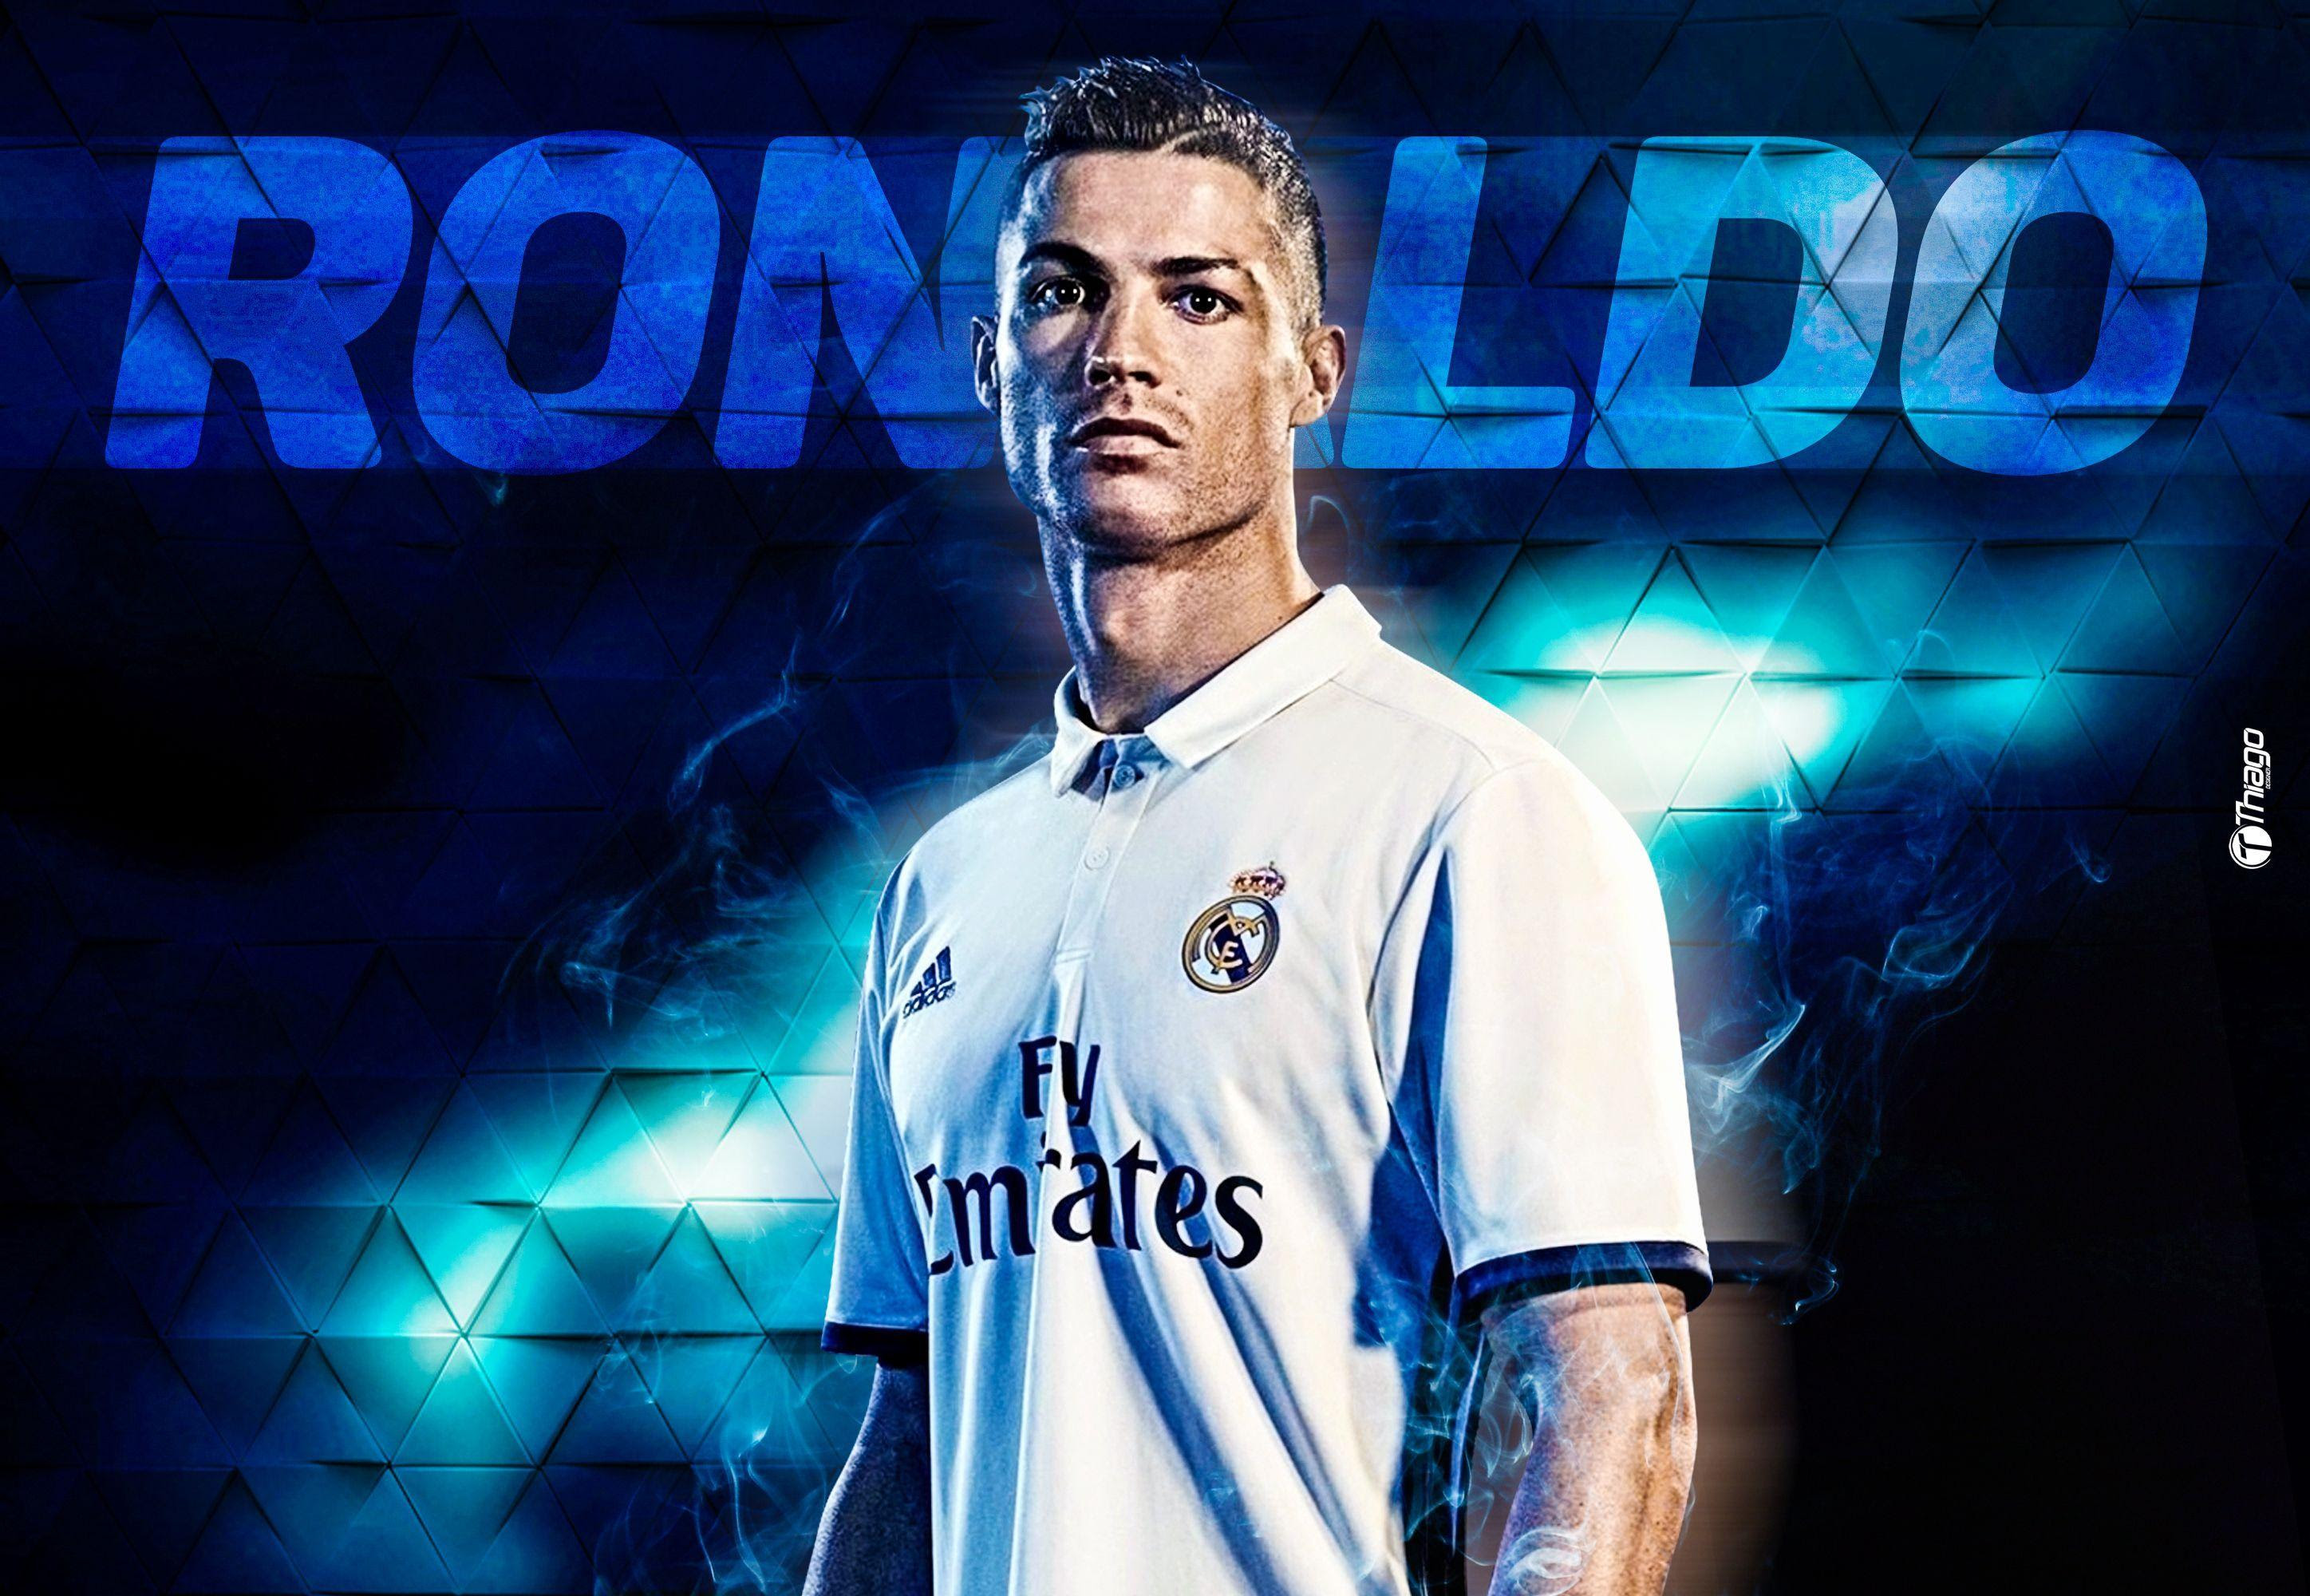 CR7 Wallpapers 2020 Wallpaper Cave